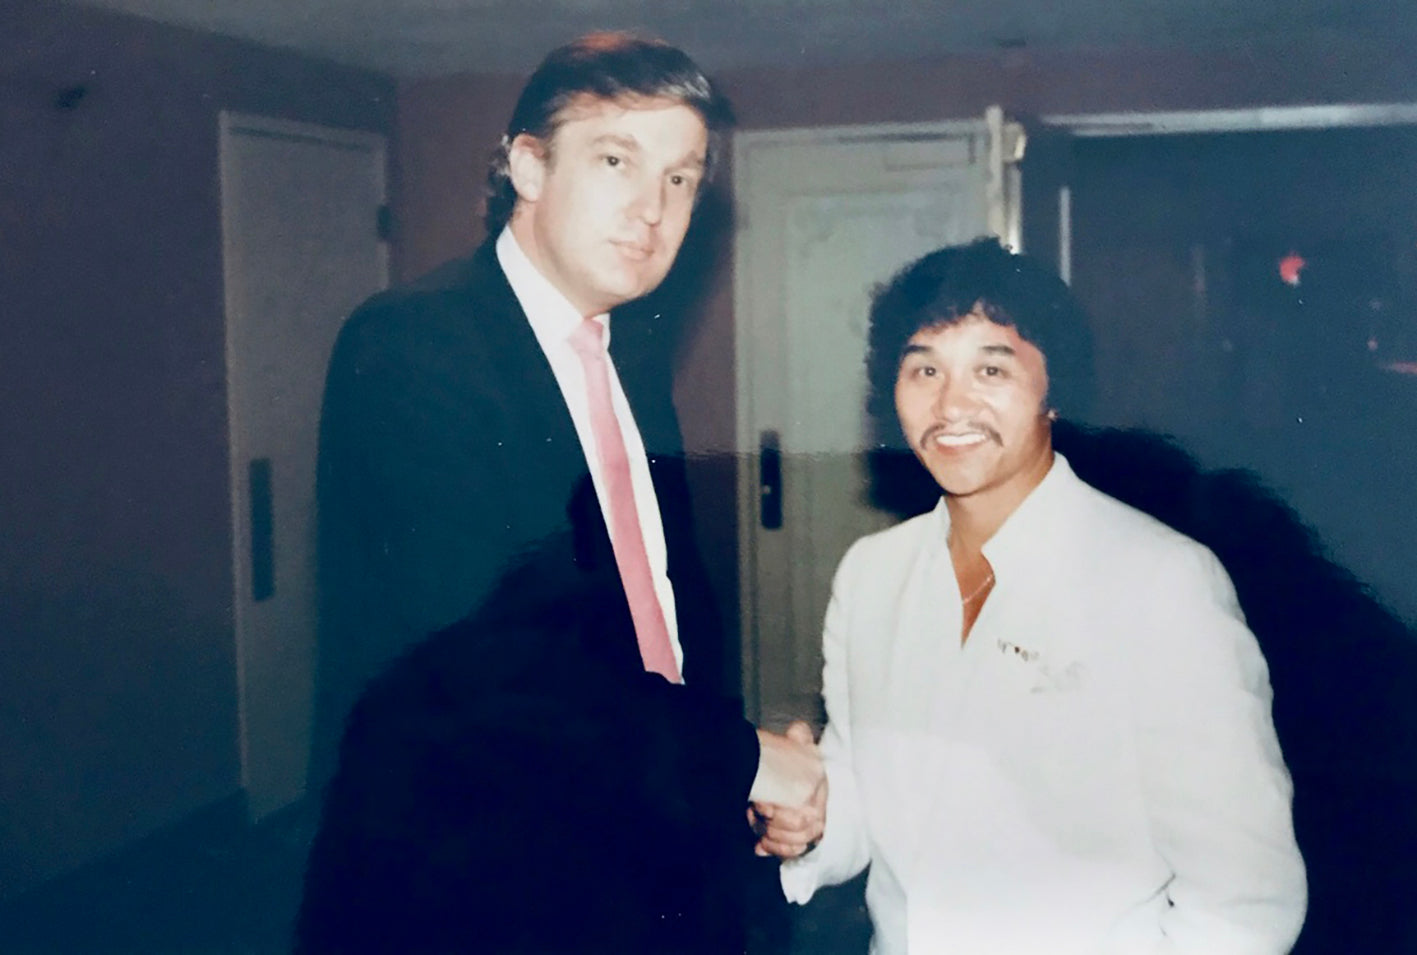 Rocky Aoki and Donald Trump